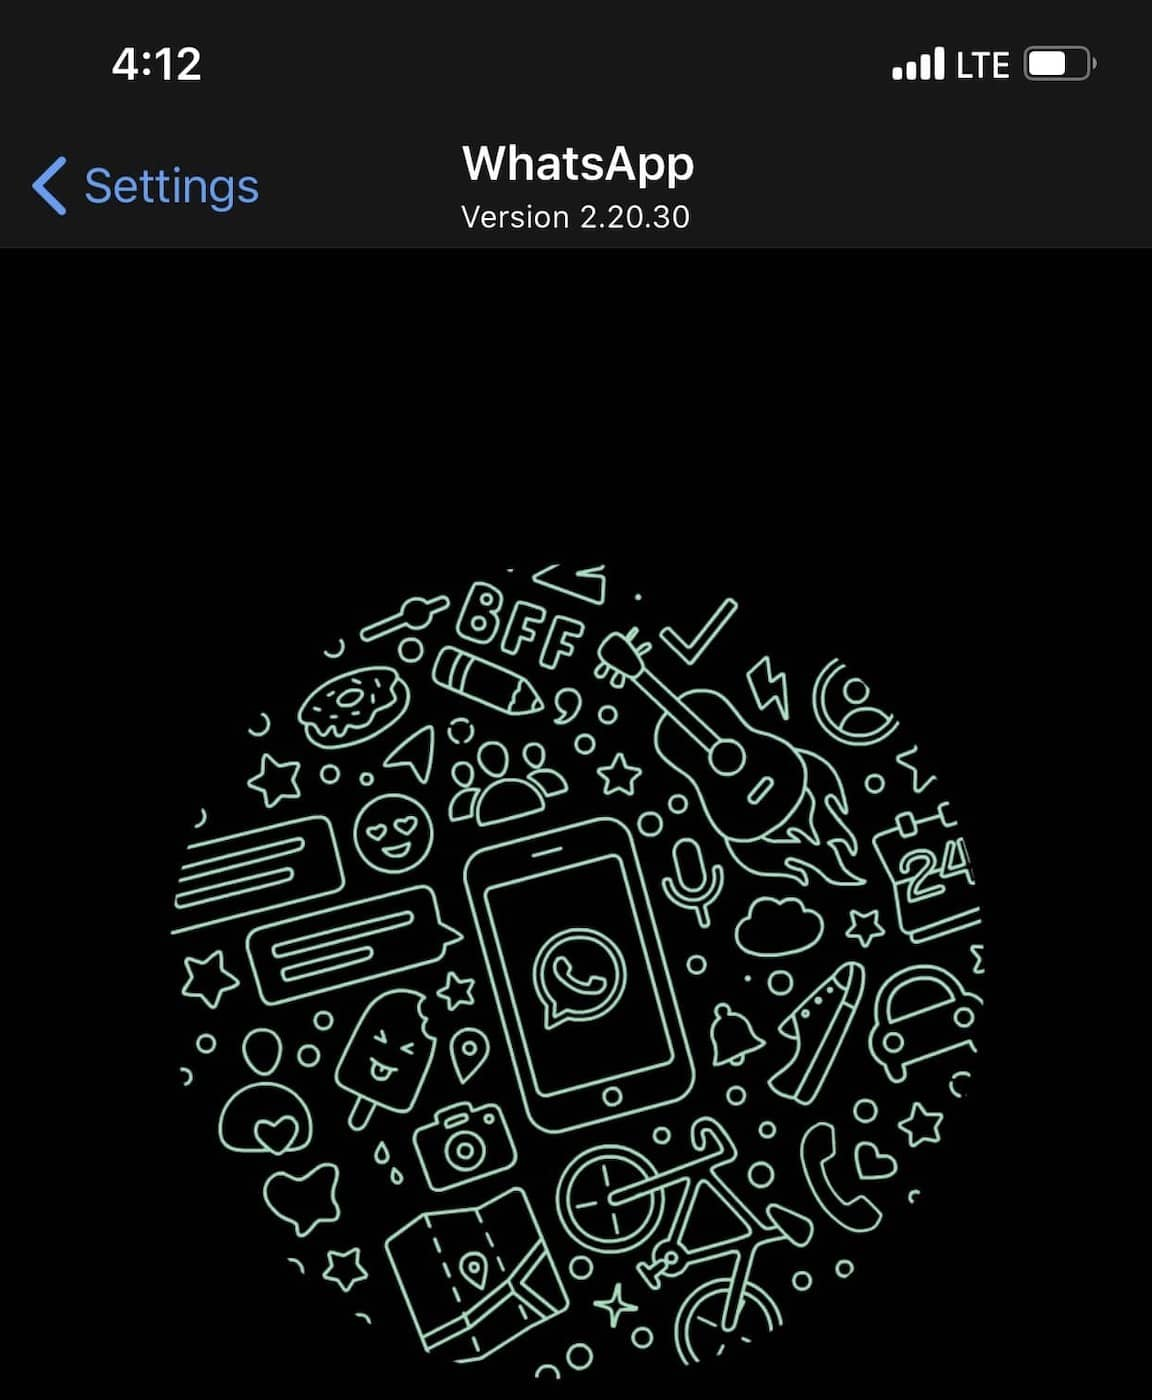 whatsapp dark mode version update